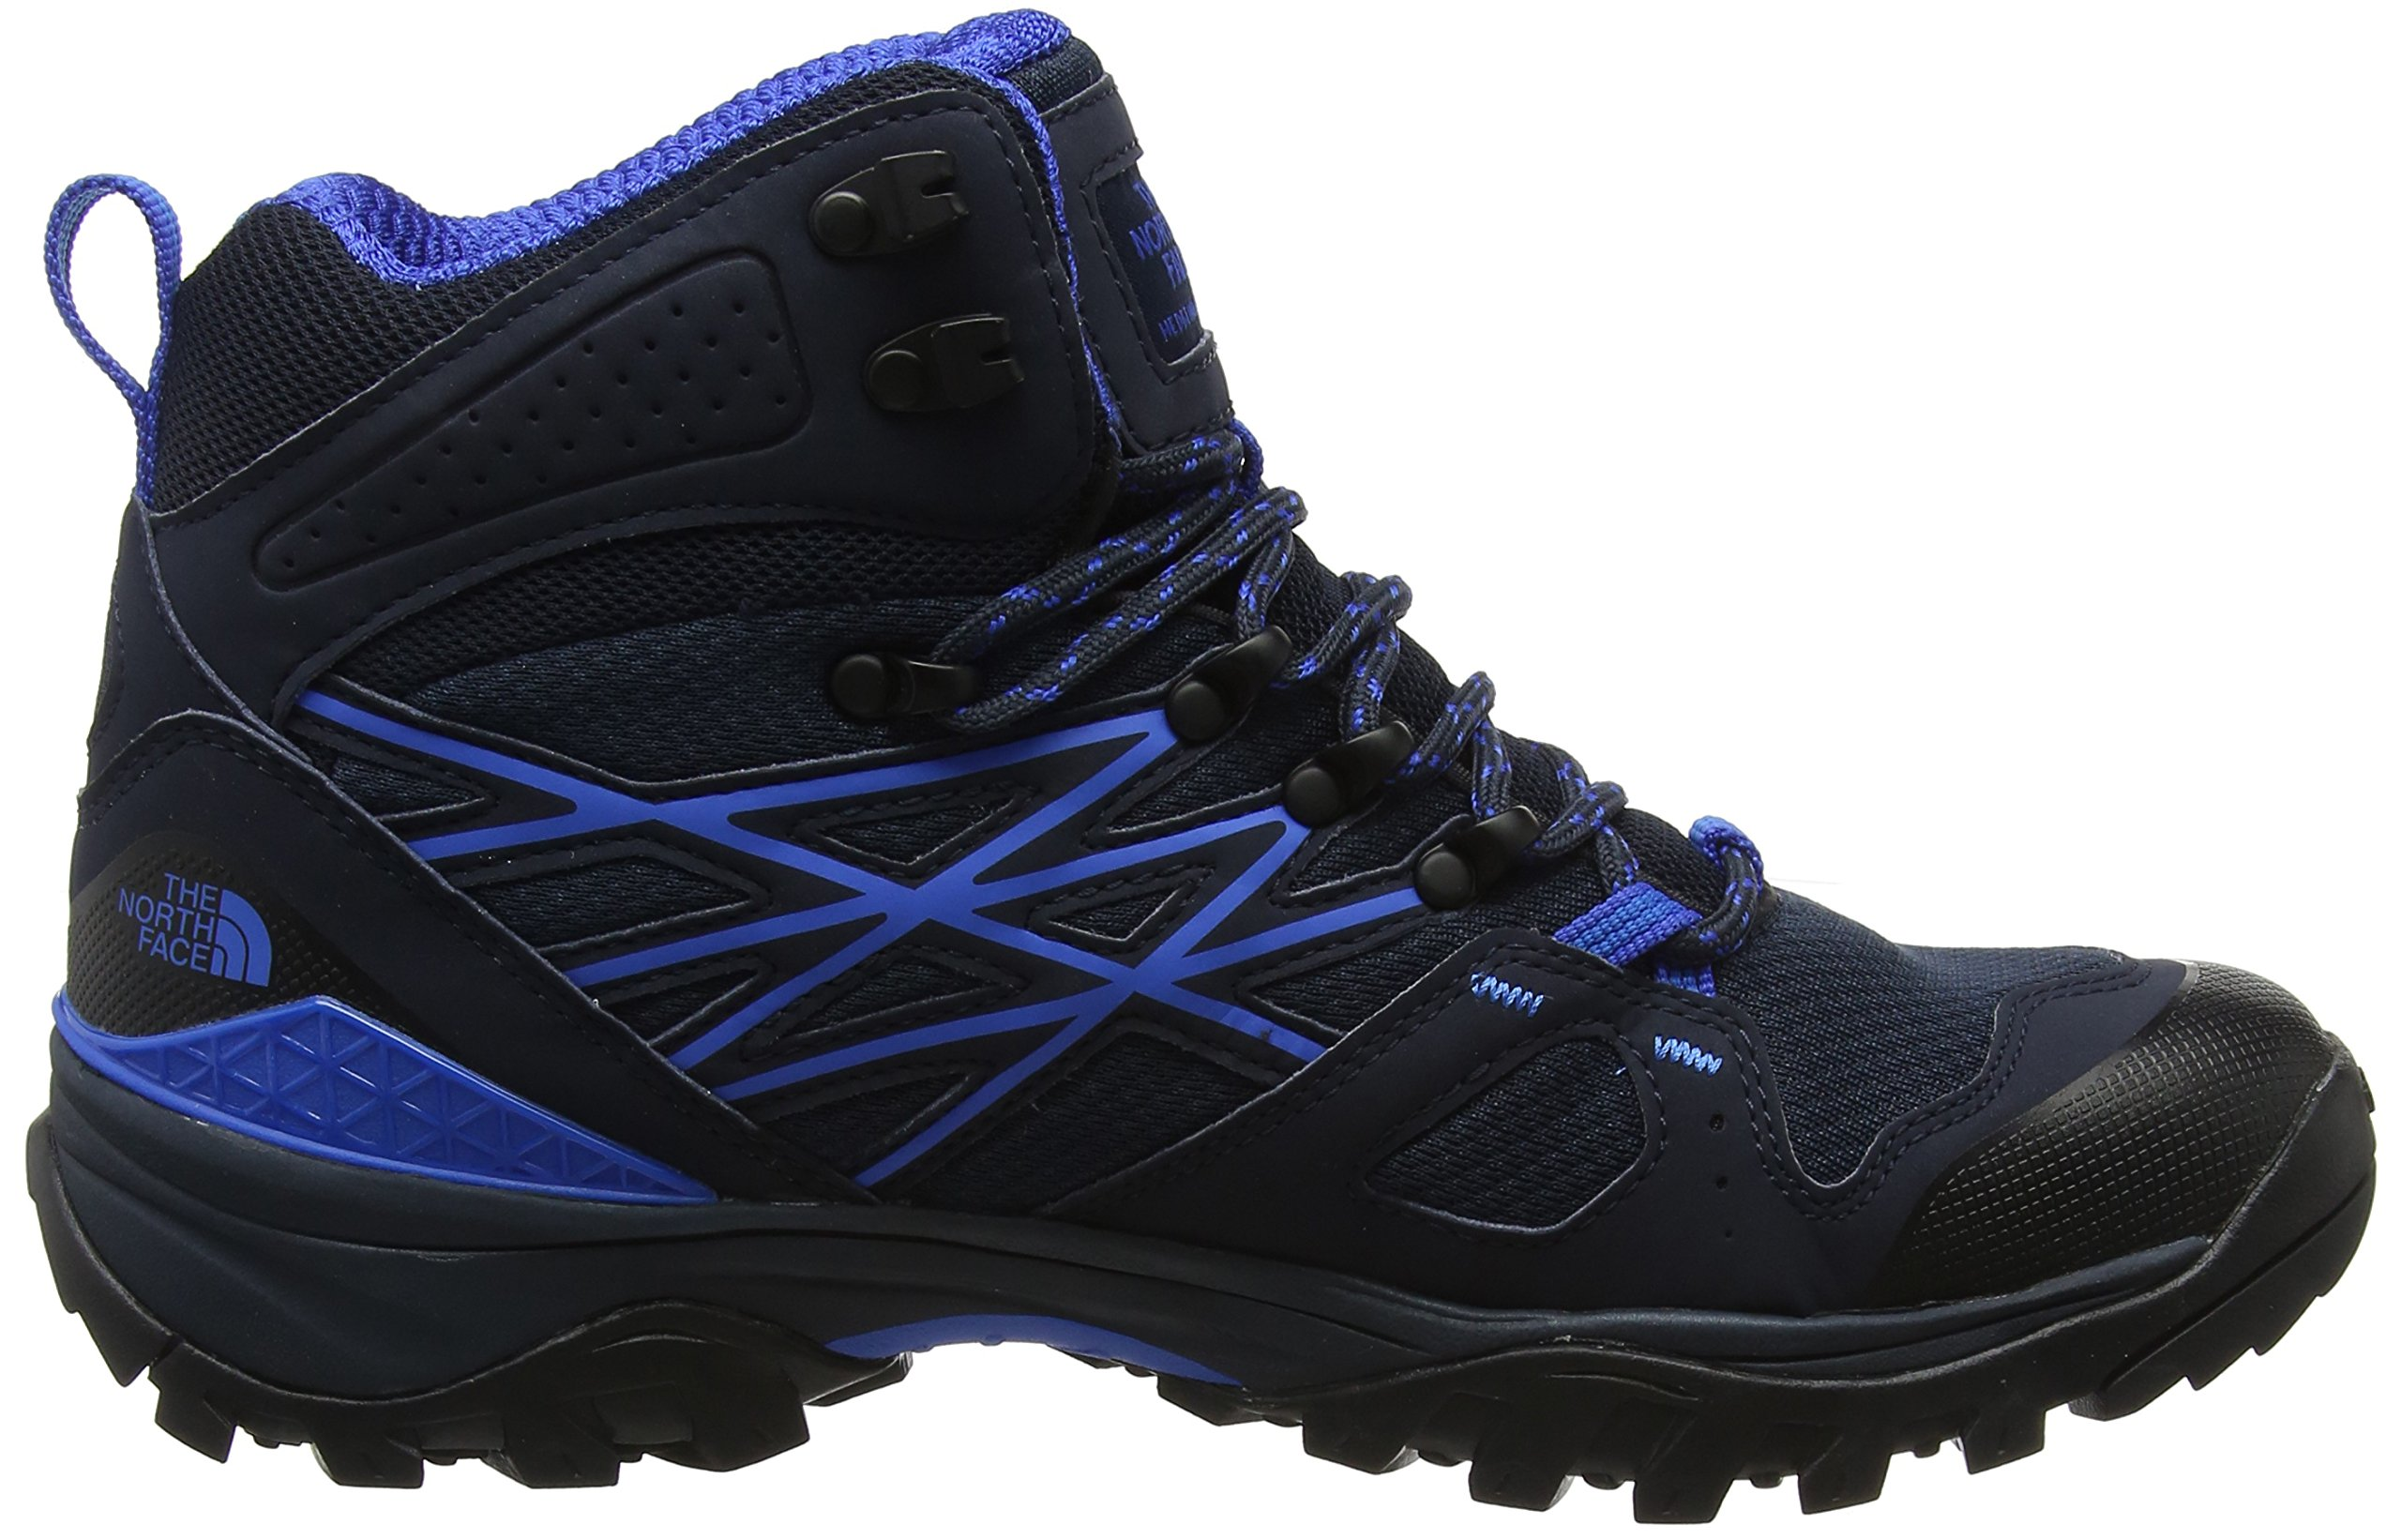 81H9wEDiJ L - THE NORTH FACE Men's Hedgehog Fastpack Mid Gtx High Rise Hiking Boots